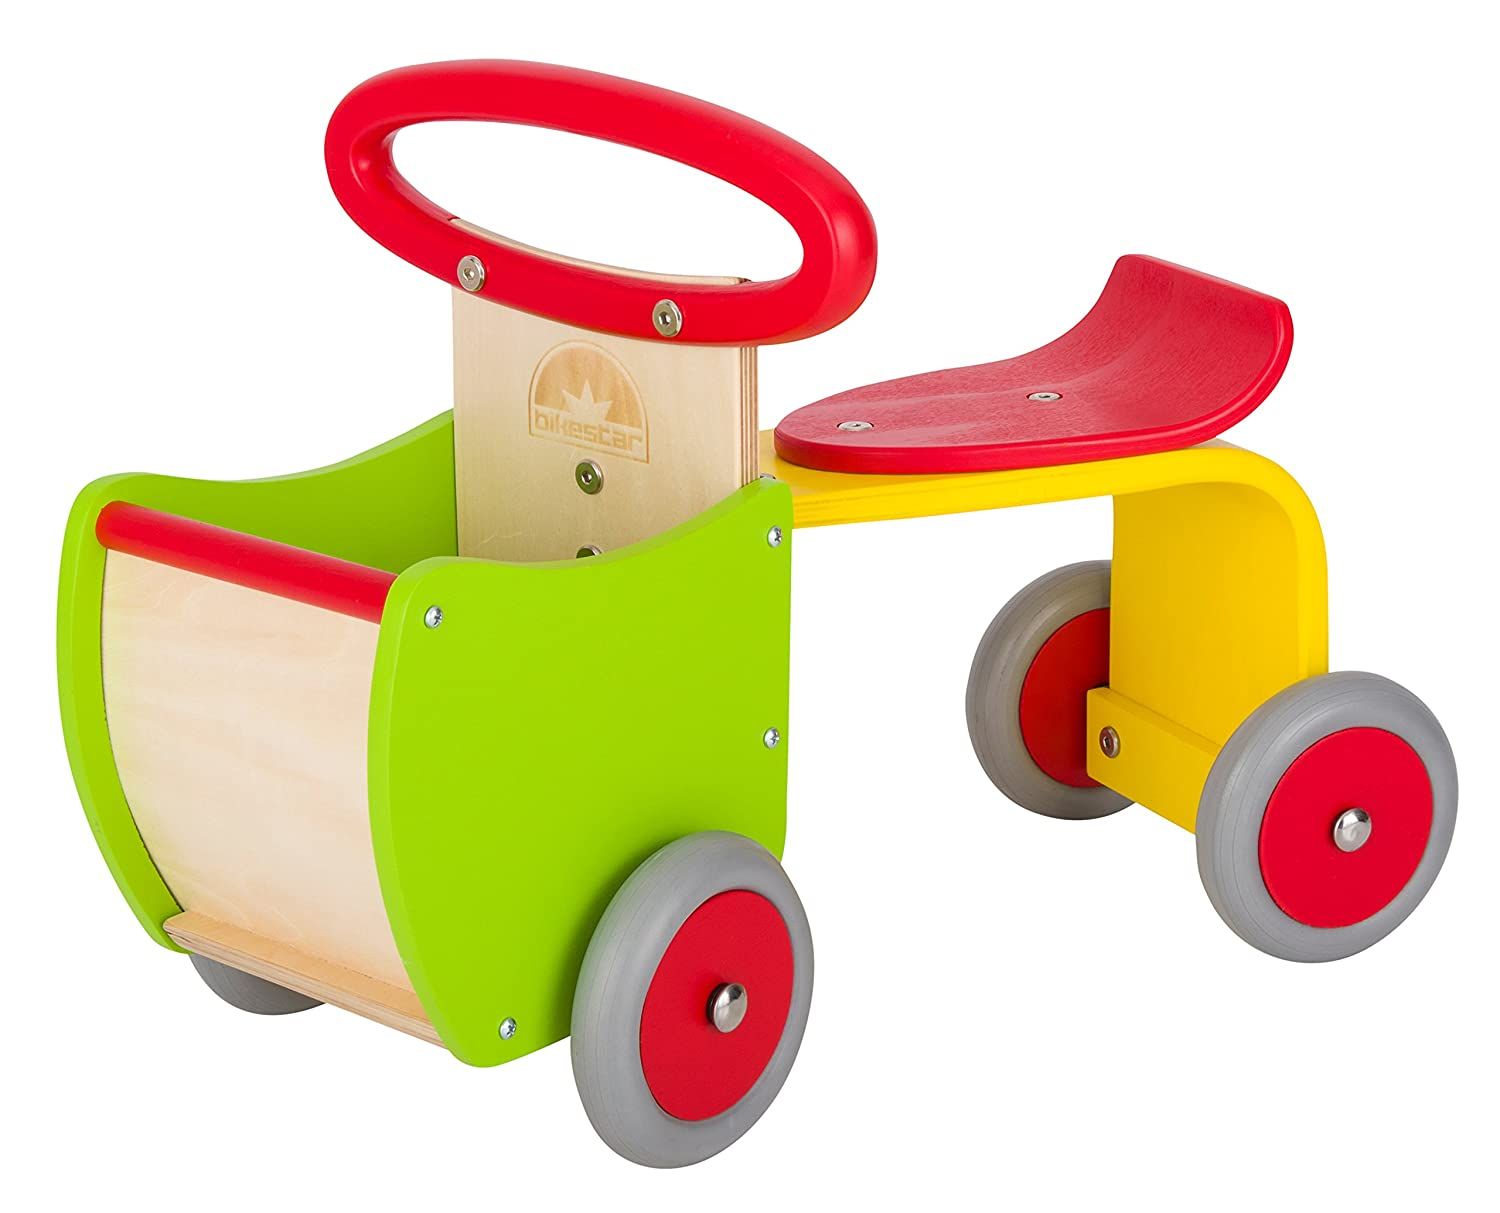 BIKESTAR Kids Wooden Ride On Car 4 Wheeler Vehicle Walker with Rubber Tires Wheely for Children Age 1 Years | Wood Racer Edition | Green Star-Trademarks